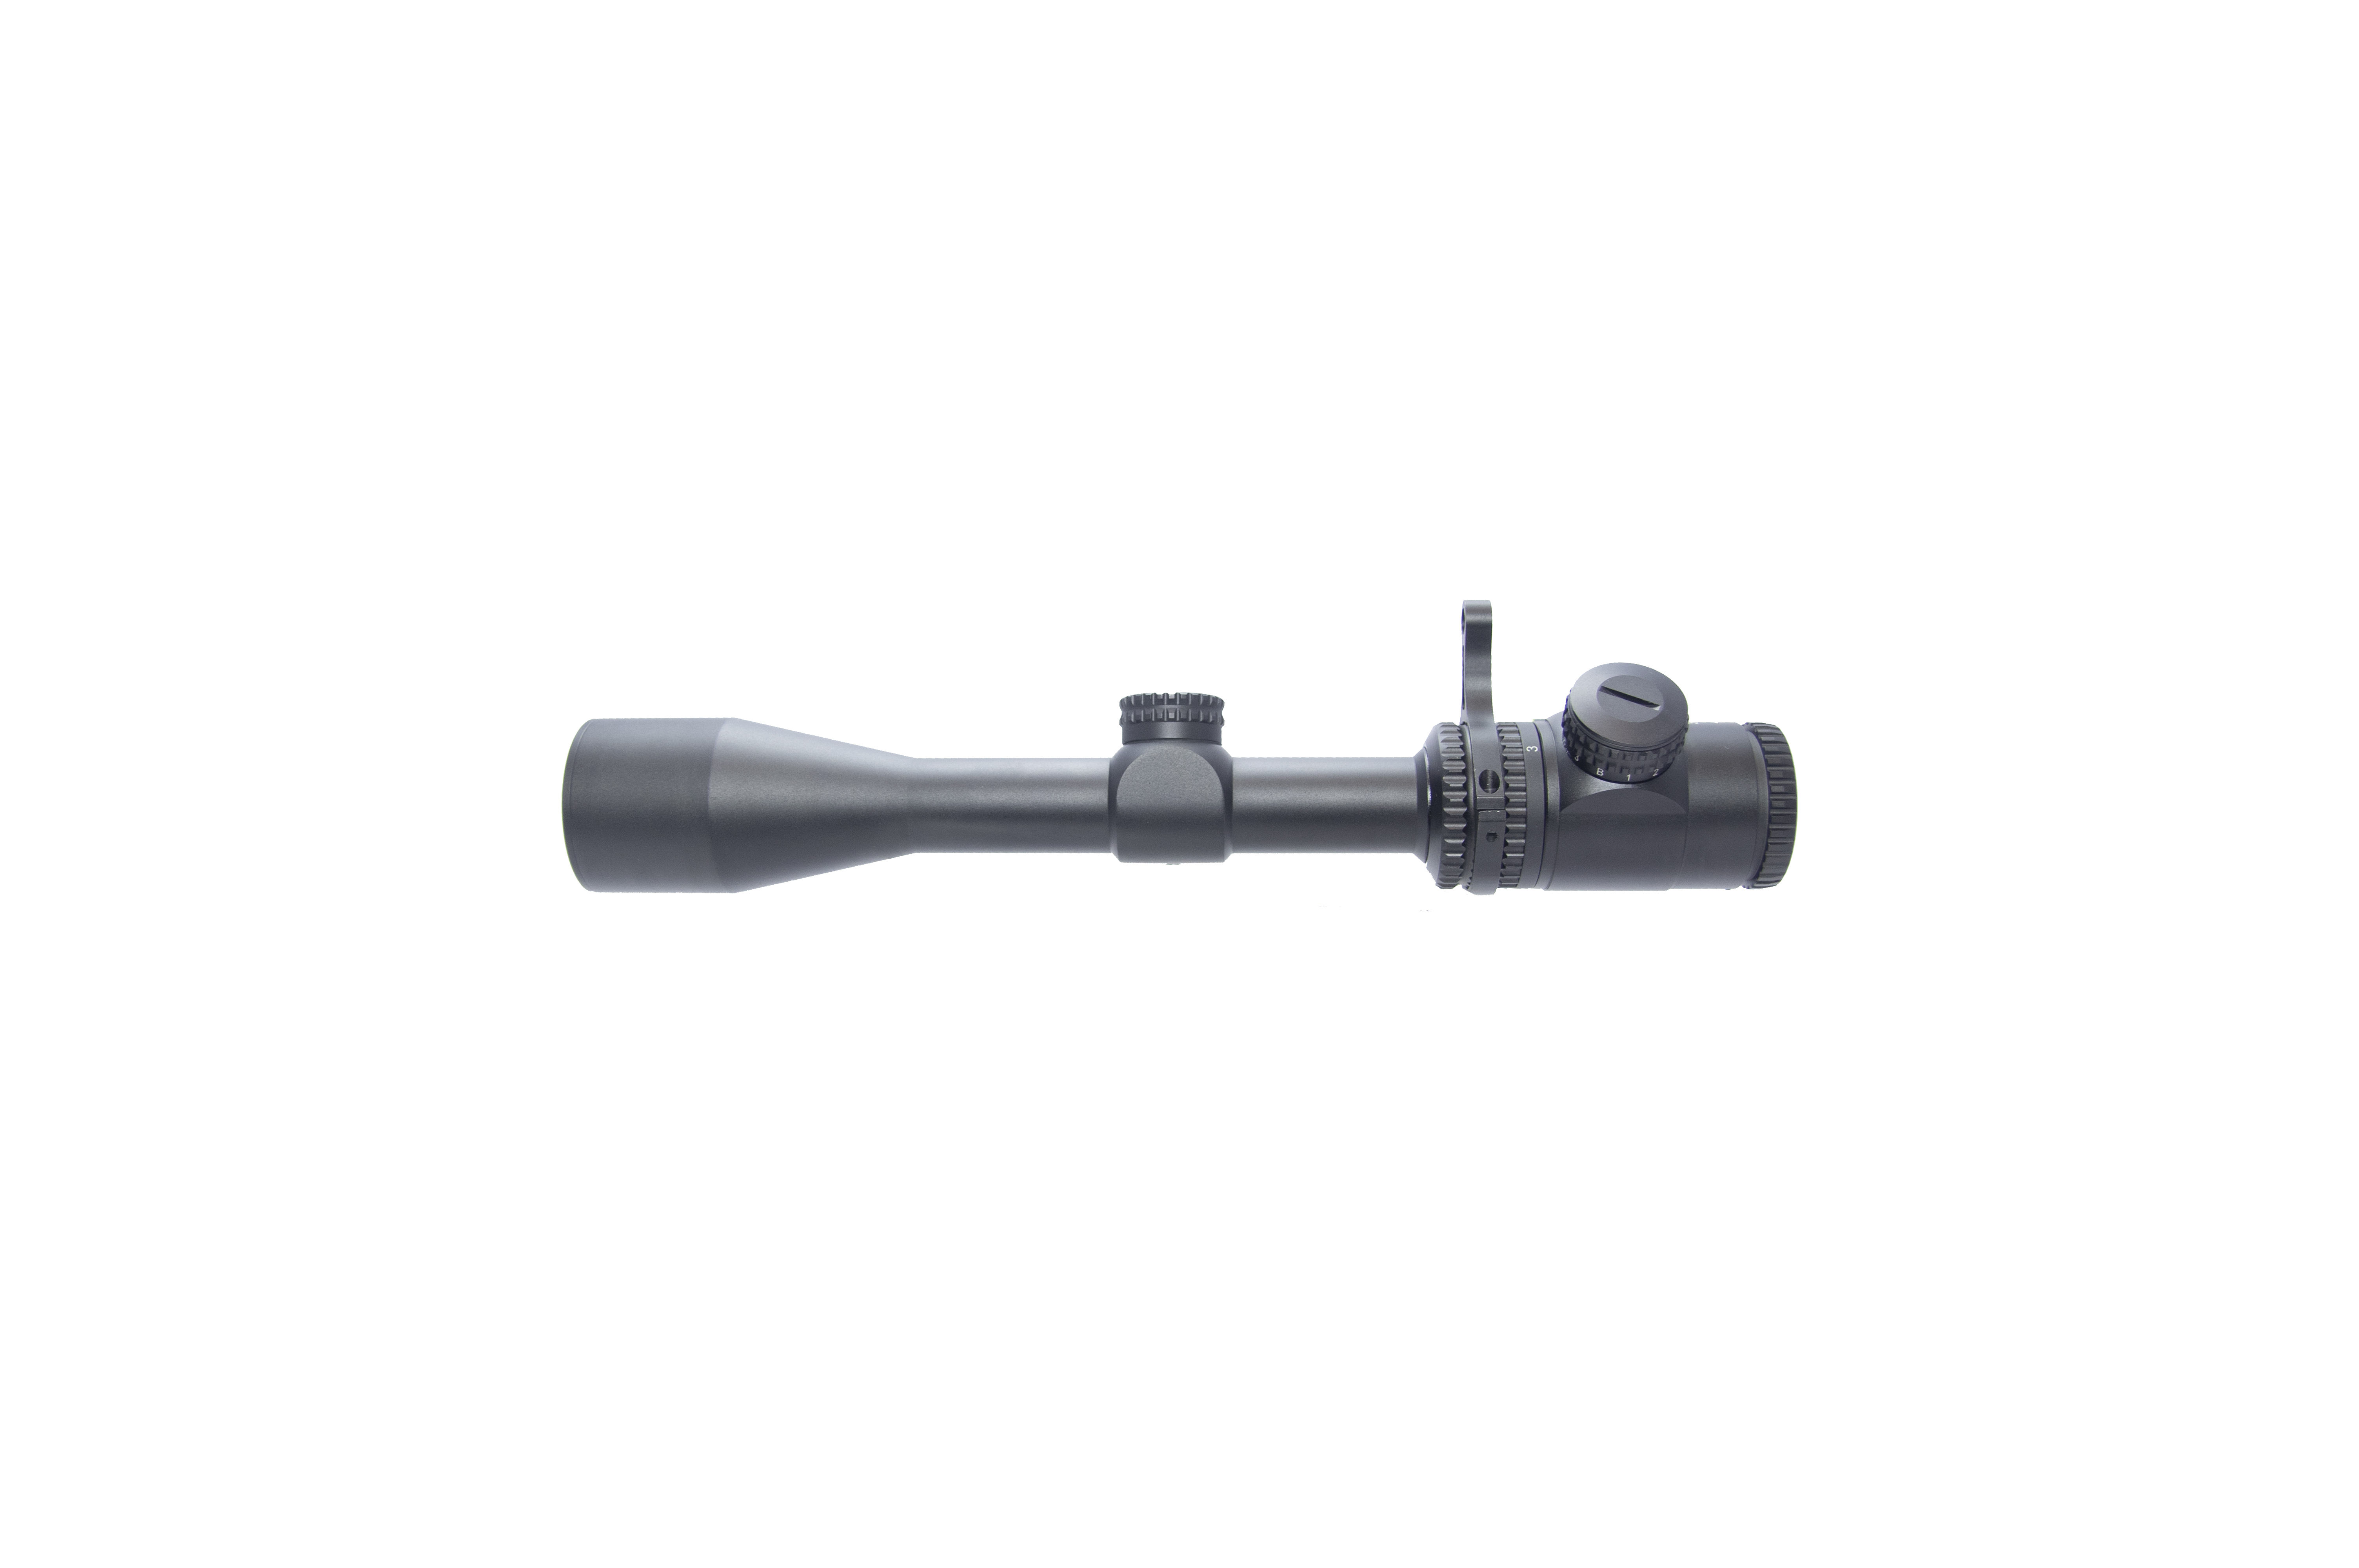 Aagil Optics 3-9 X 40